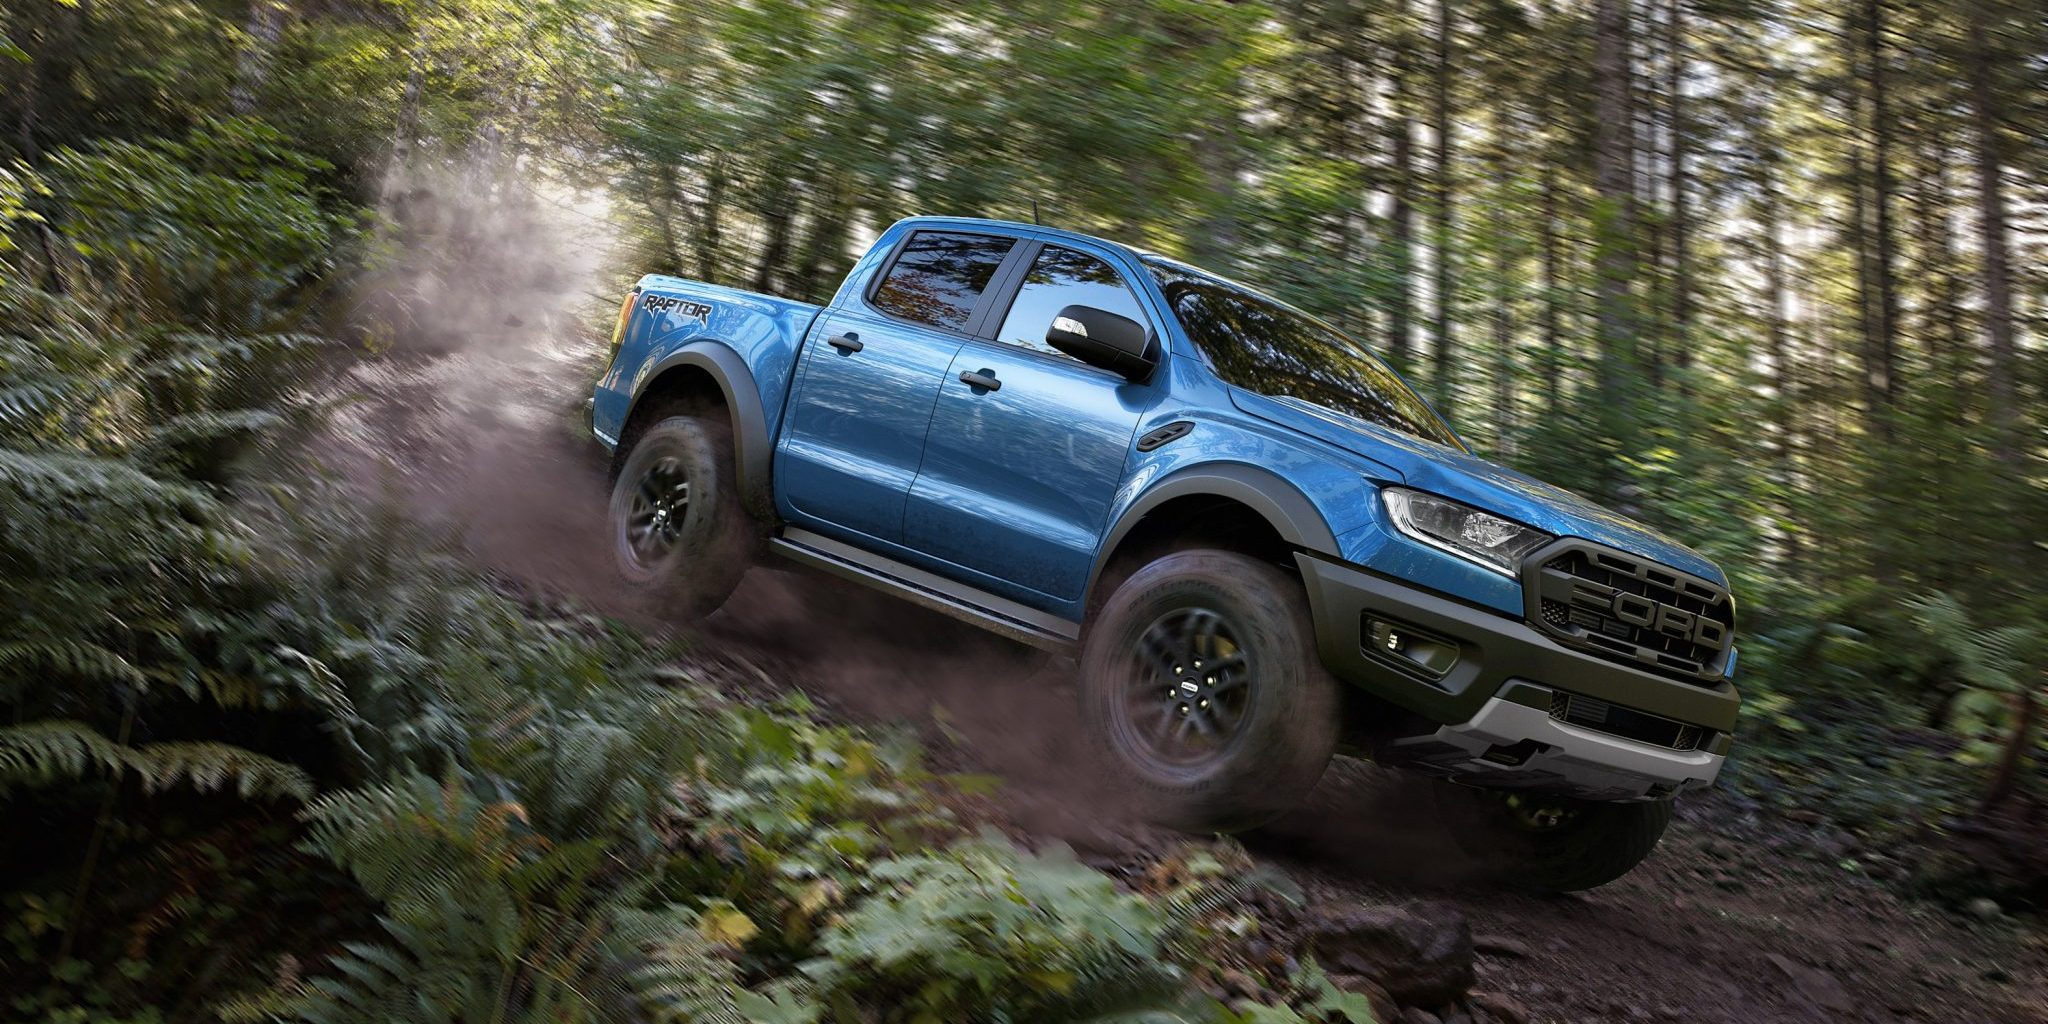 Updates to the Ford Ranger Raptor and Wildtrak models